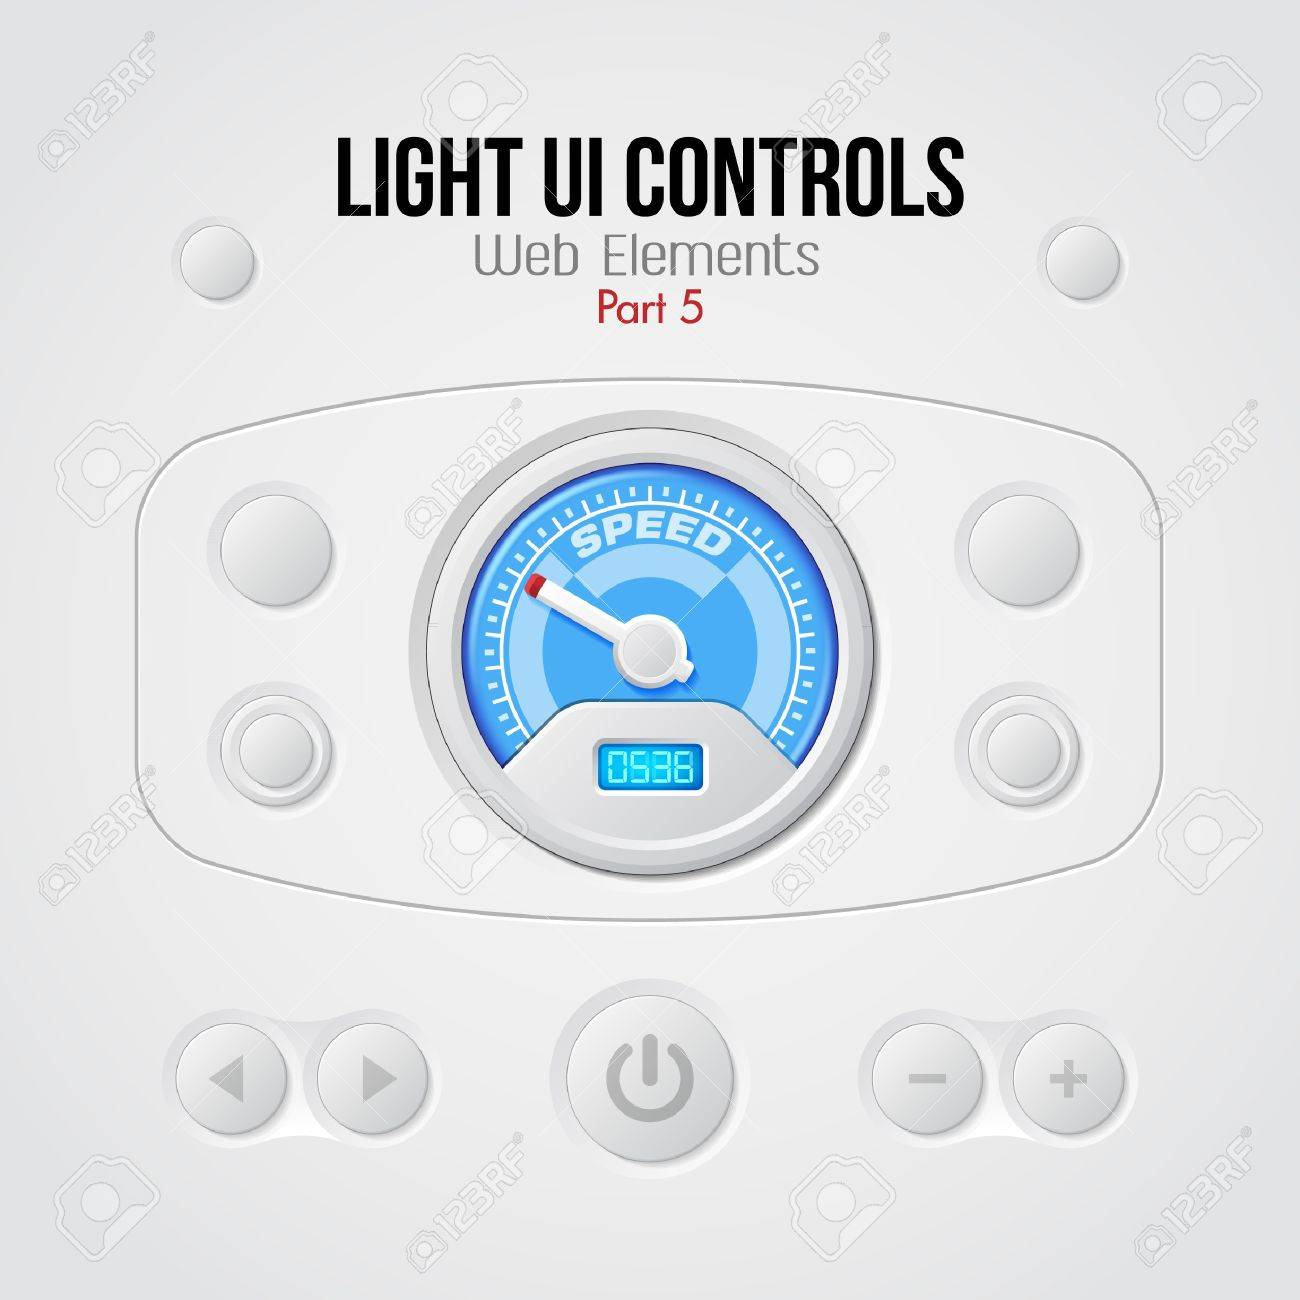 Light UI Controls Web Elements 5  Buttons, Switchers, On, Off, Player, Audio, Video, Volume, Speed Indicator, Speedometer Stock Vector - 14987853